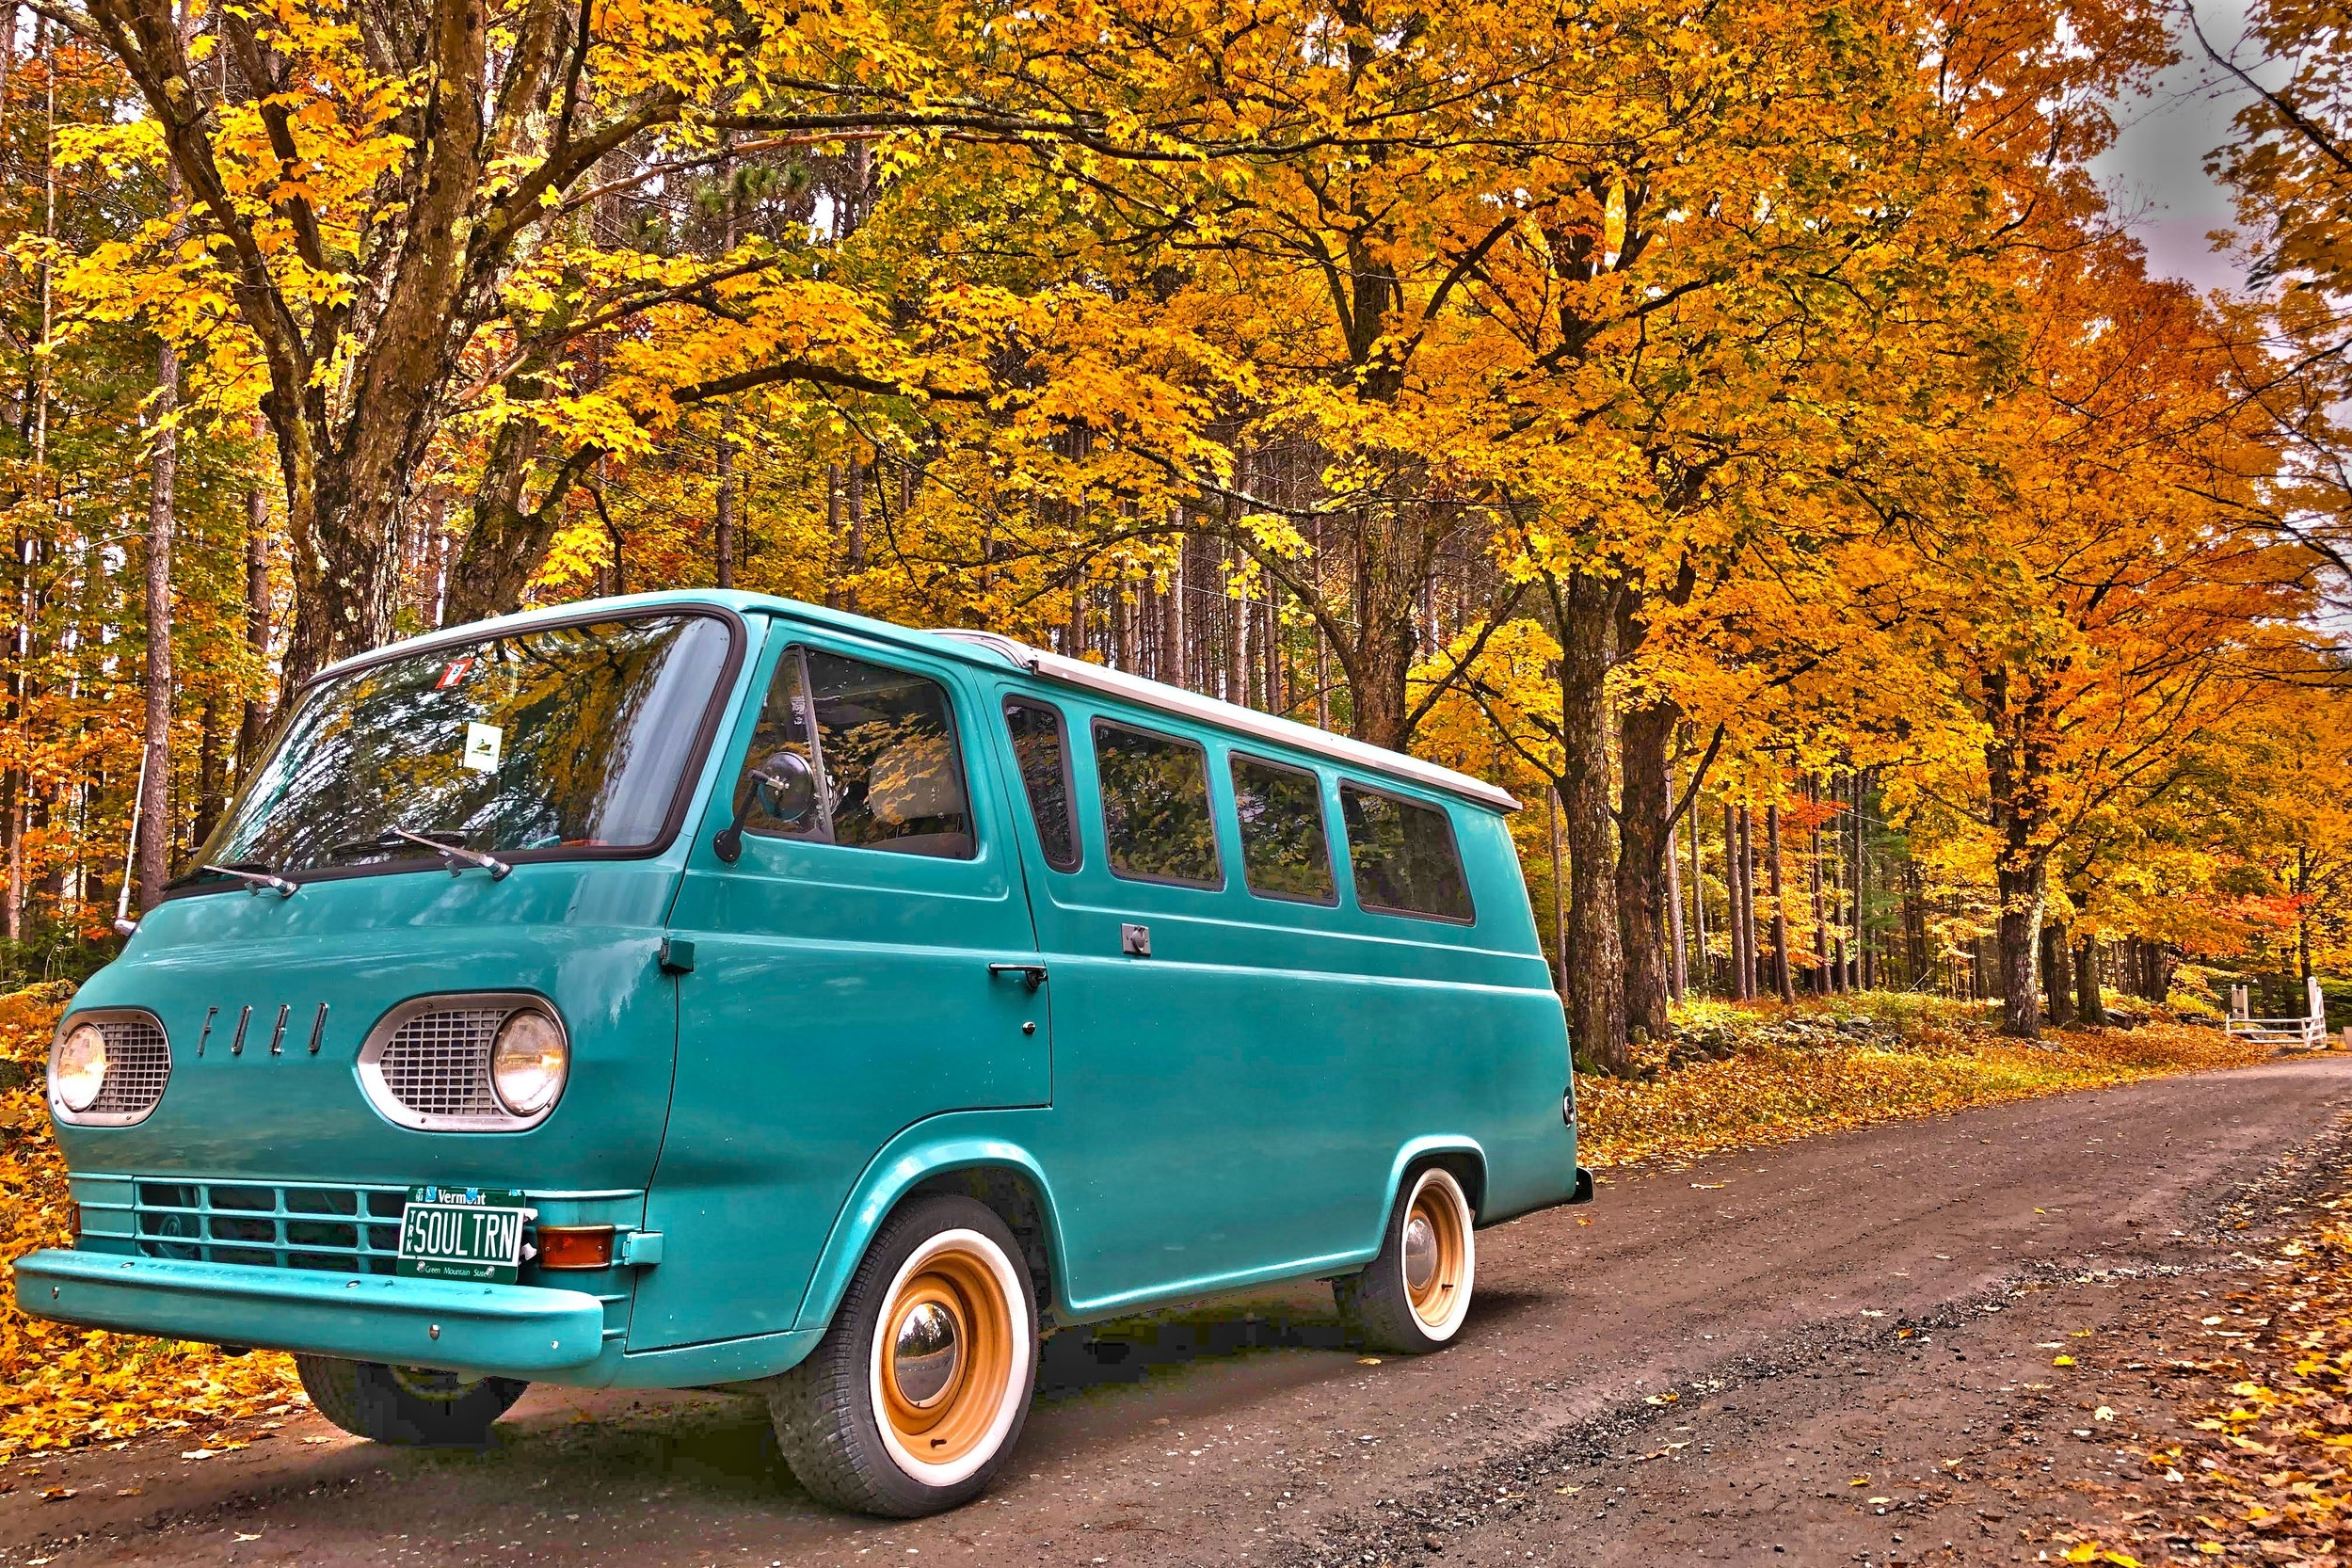 1967 Ford Travel Wagon - This extremely rare party animal has a spacious interior for large groups and all-around fun times!